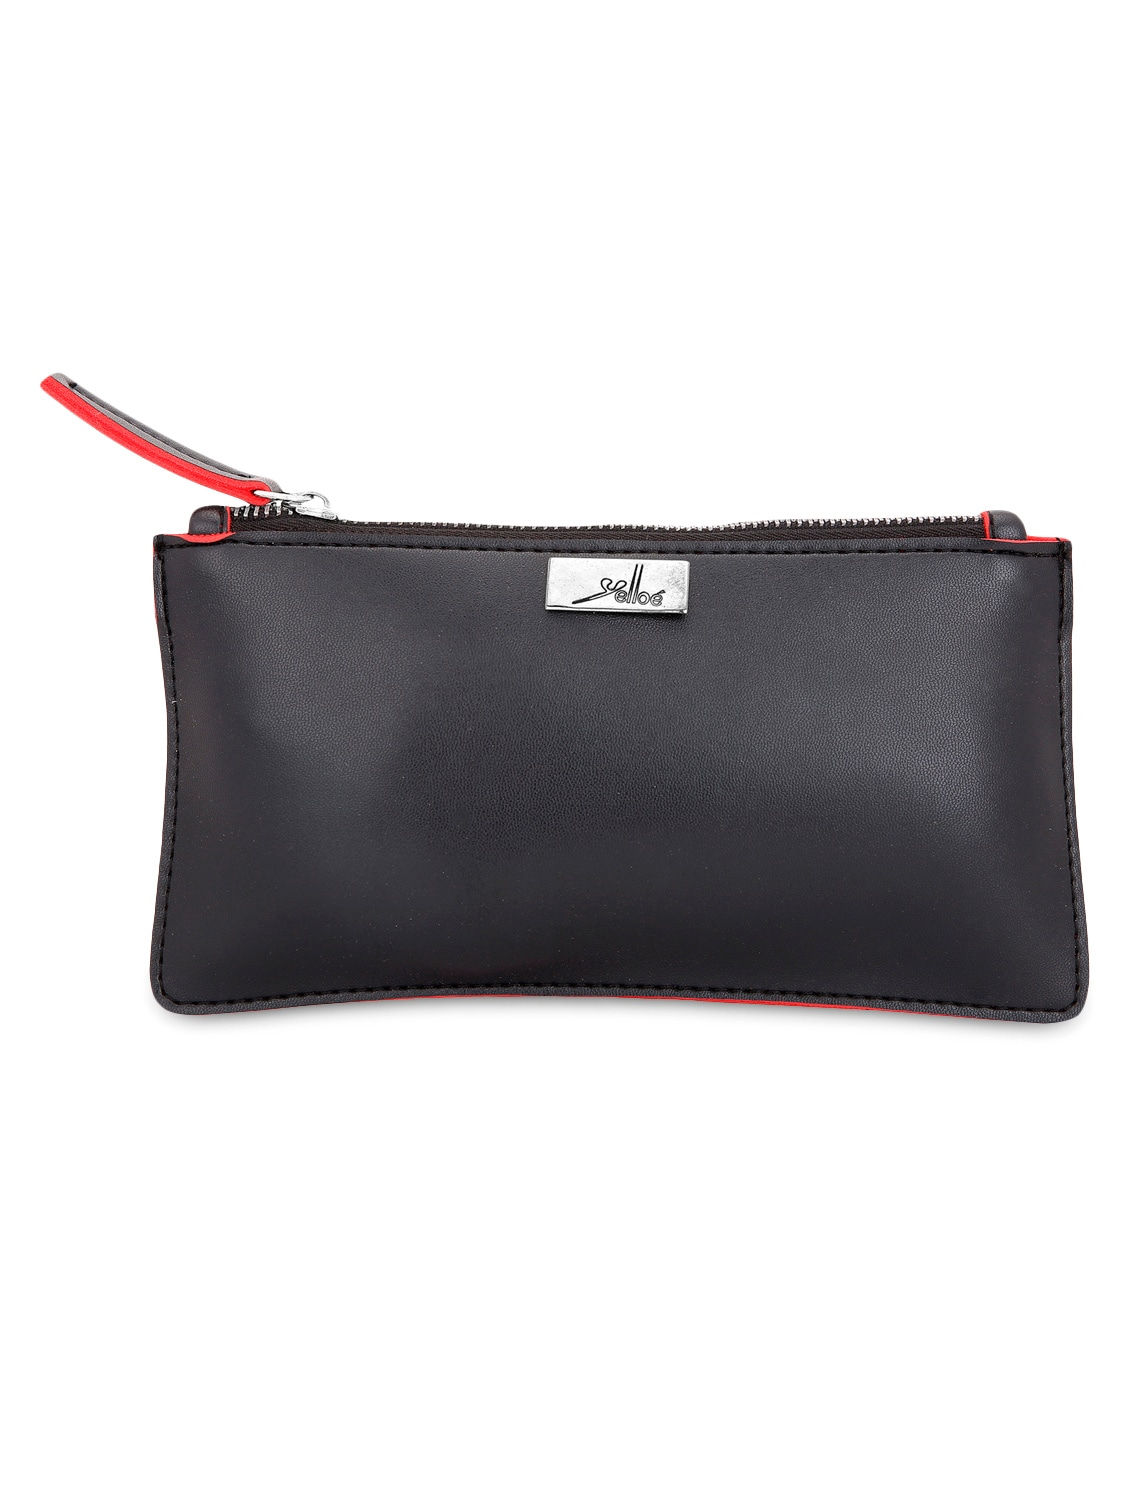 Solid Black Leatherette Wallet With Cardholder - By